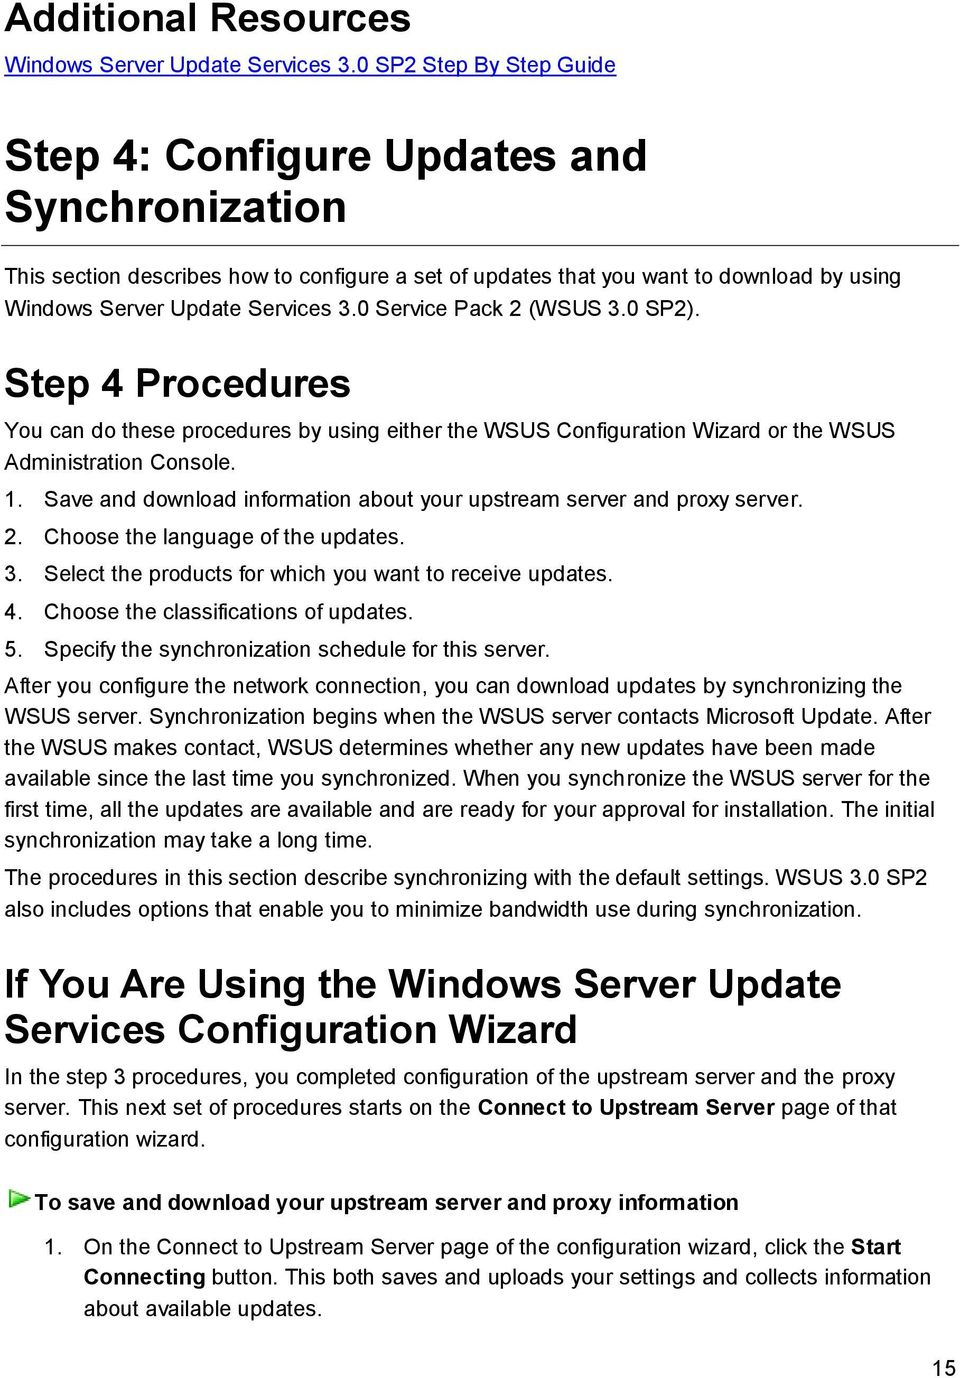 0 Service Pack 2 (WSUS 3.0 SP2). Step 4 Procedures You can do these procedures by using either the WSUS Configuration Wizard or the WSUS Administration Console. 1.